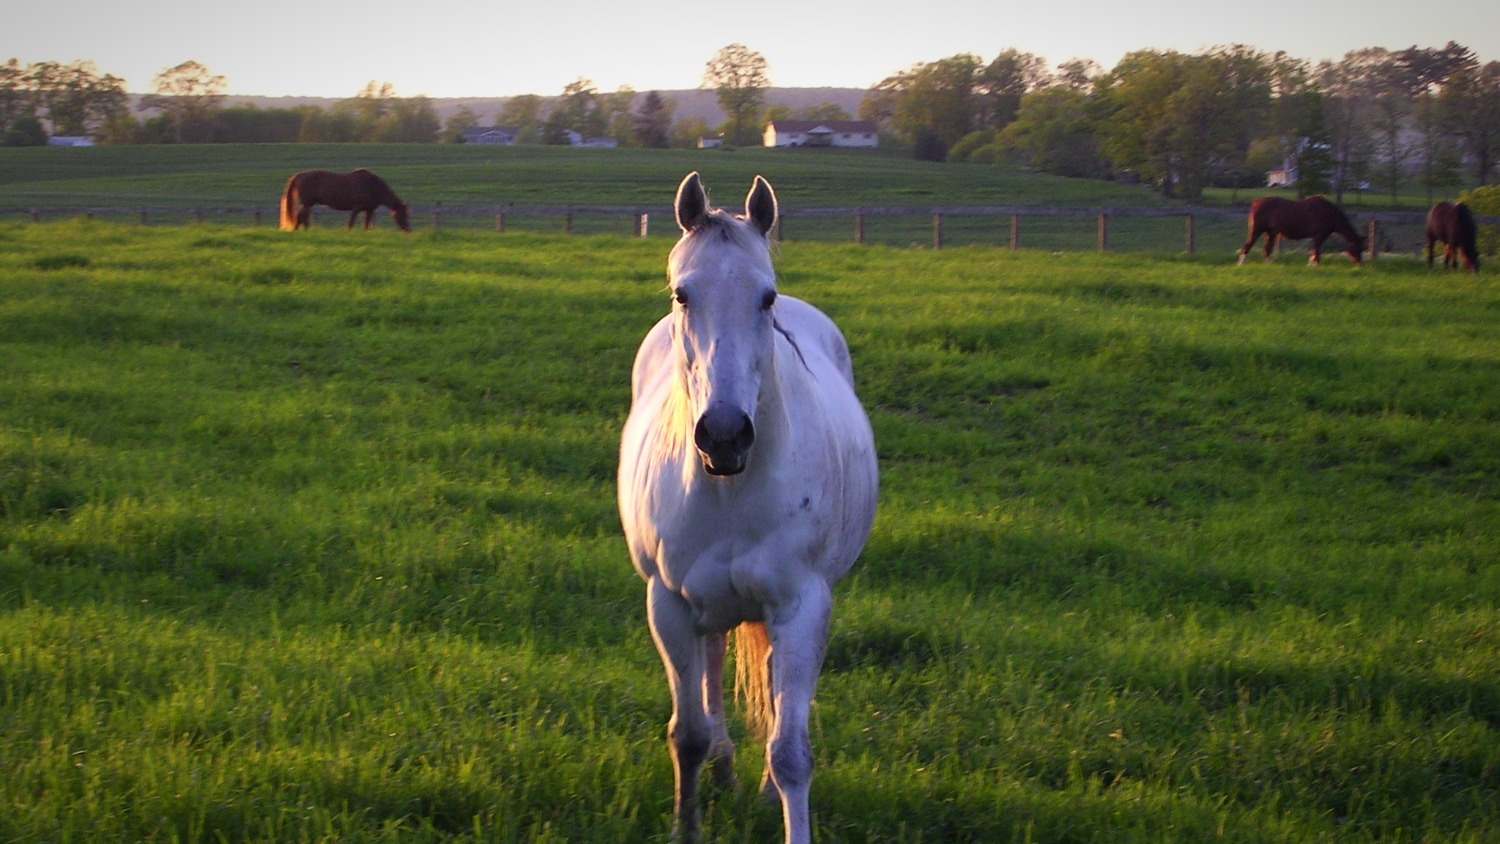 Plushy, retired TB racehorse enjoying his retirement after purchase from auction by owner.